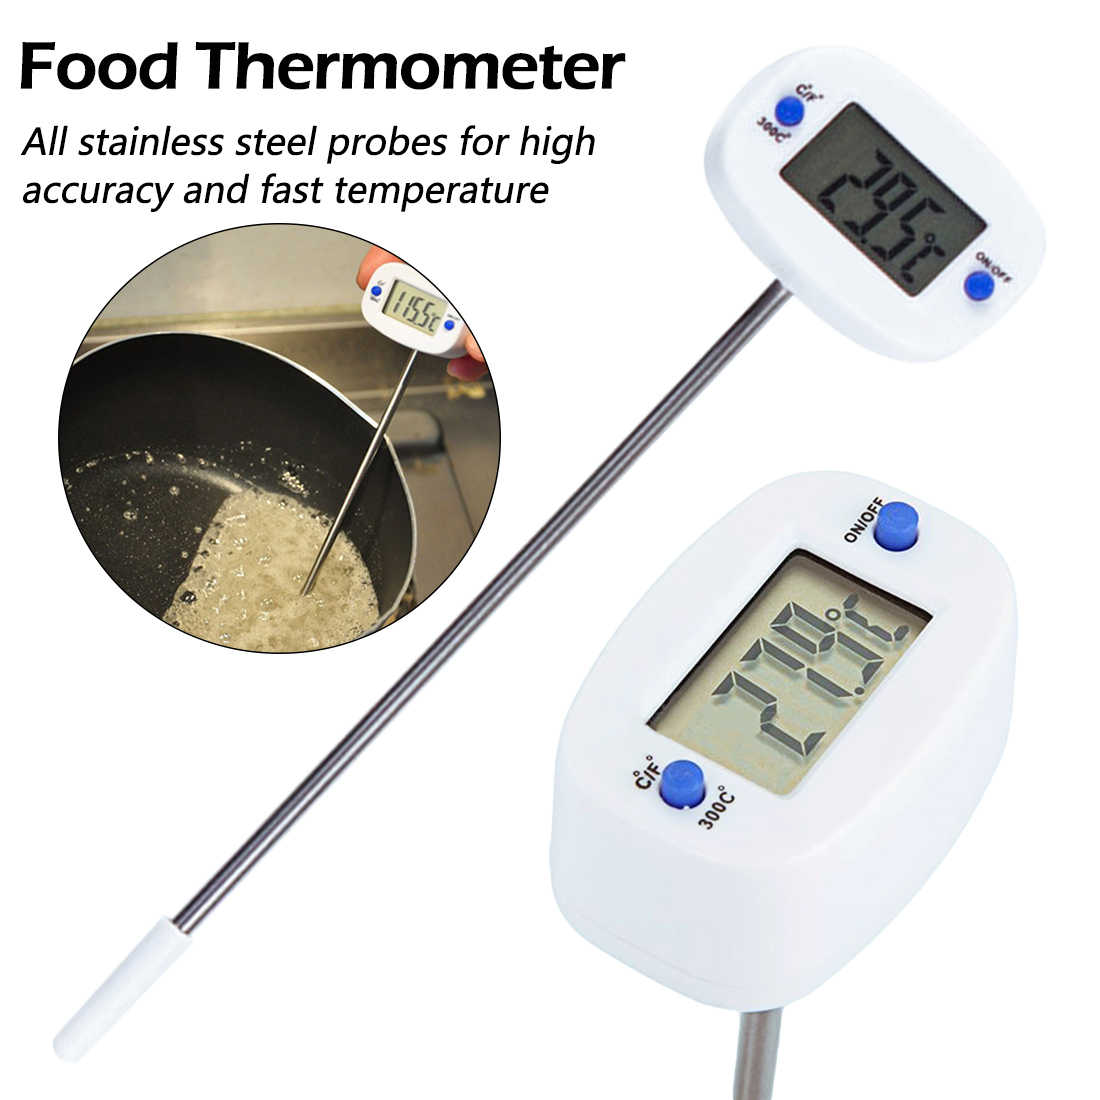 Rotatable Digital Food Thermometer BBQ Daging Cokelat Oven Air Susu Minyak Memasak Dapur Termometer Elektronik Probe